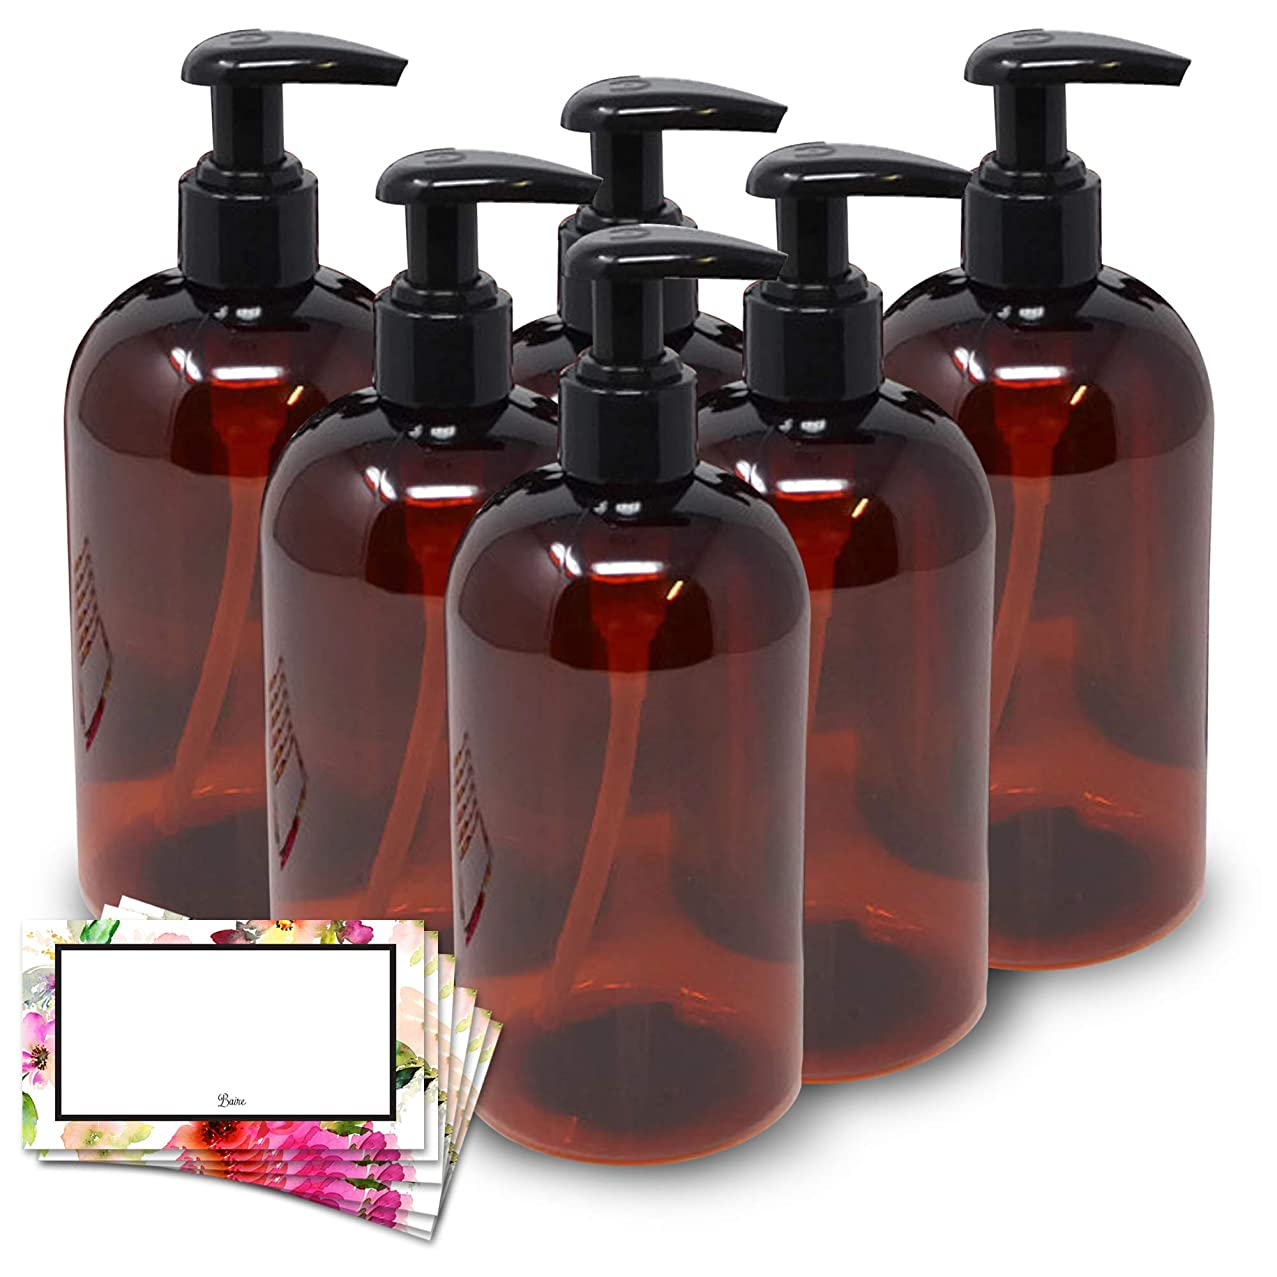 BAIRE BOTTLES - 8 OZ BROWN AMBER PLASTIC REFILLABLE BOTTLE with BLACK LOTION Pumps - ORGANIZE Soap, Shampoo and Lotion - PET, Lightweight, BPA Free - 6 Pack, BONUS 6 FLORAL LABELS